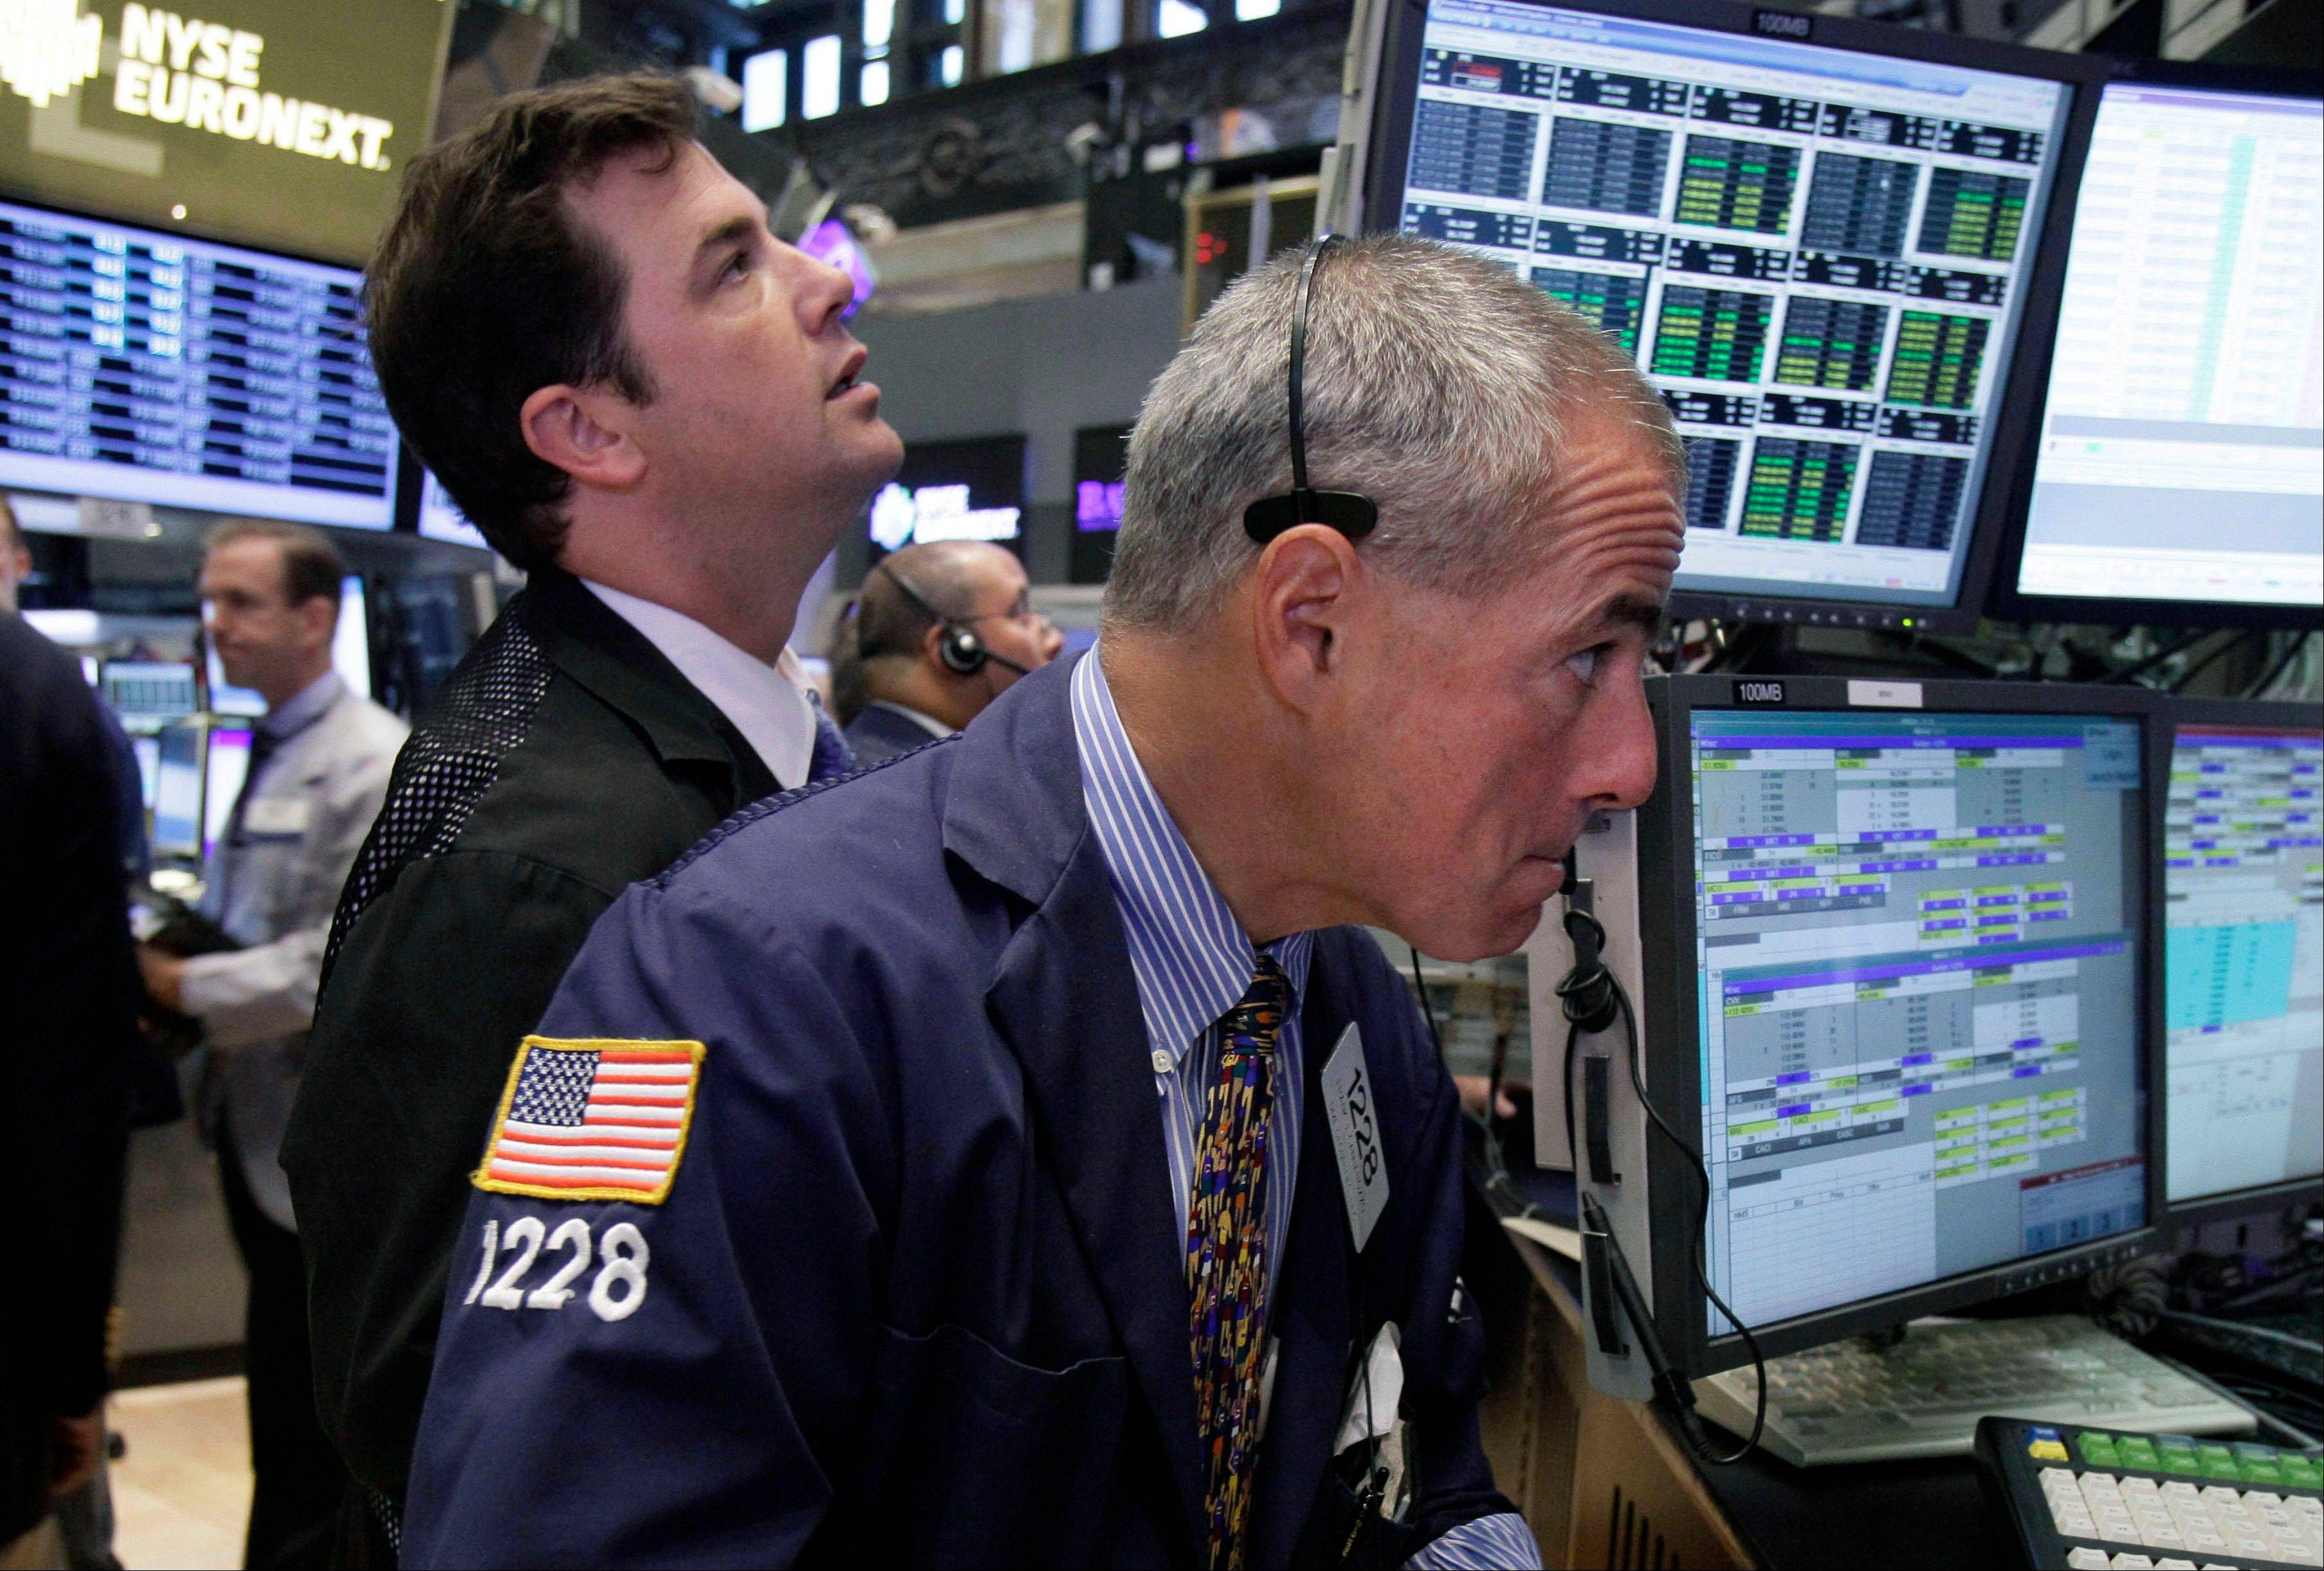 U.S. stocks fell, following the first weekly decline in about two months for the Standard & Poor�s 500 Index, as investors awaited indications on whether the Federal Reserve will provide further stimulus measures.